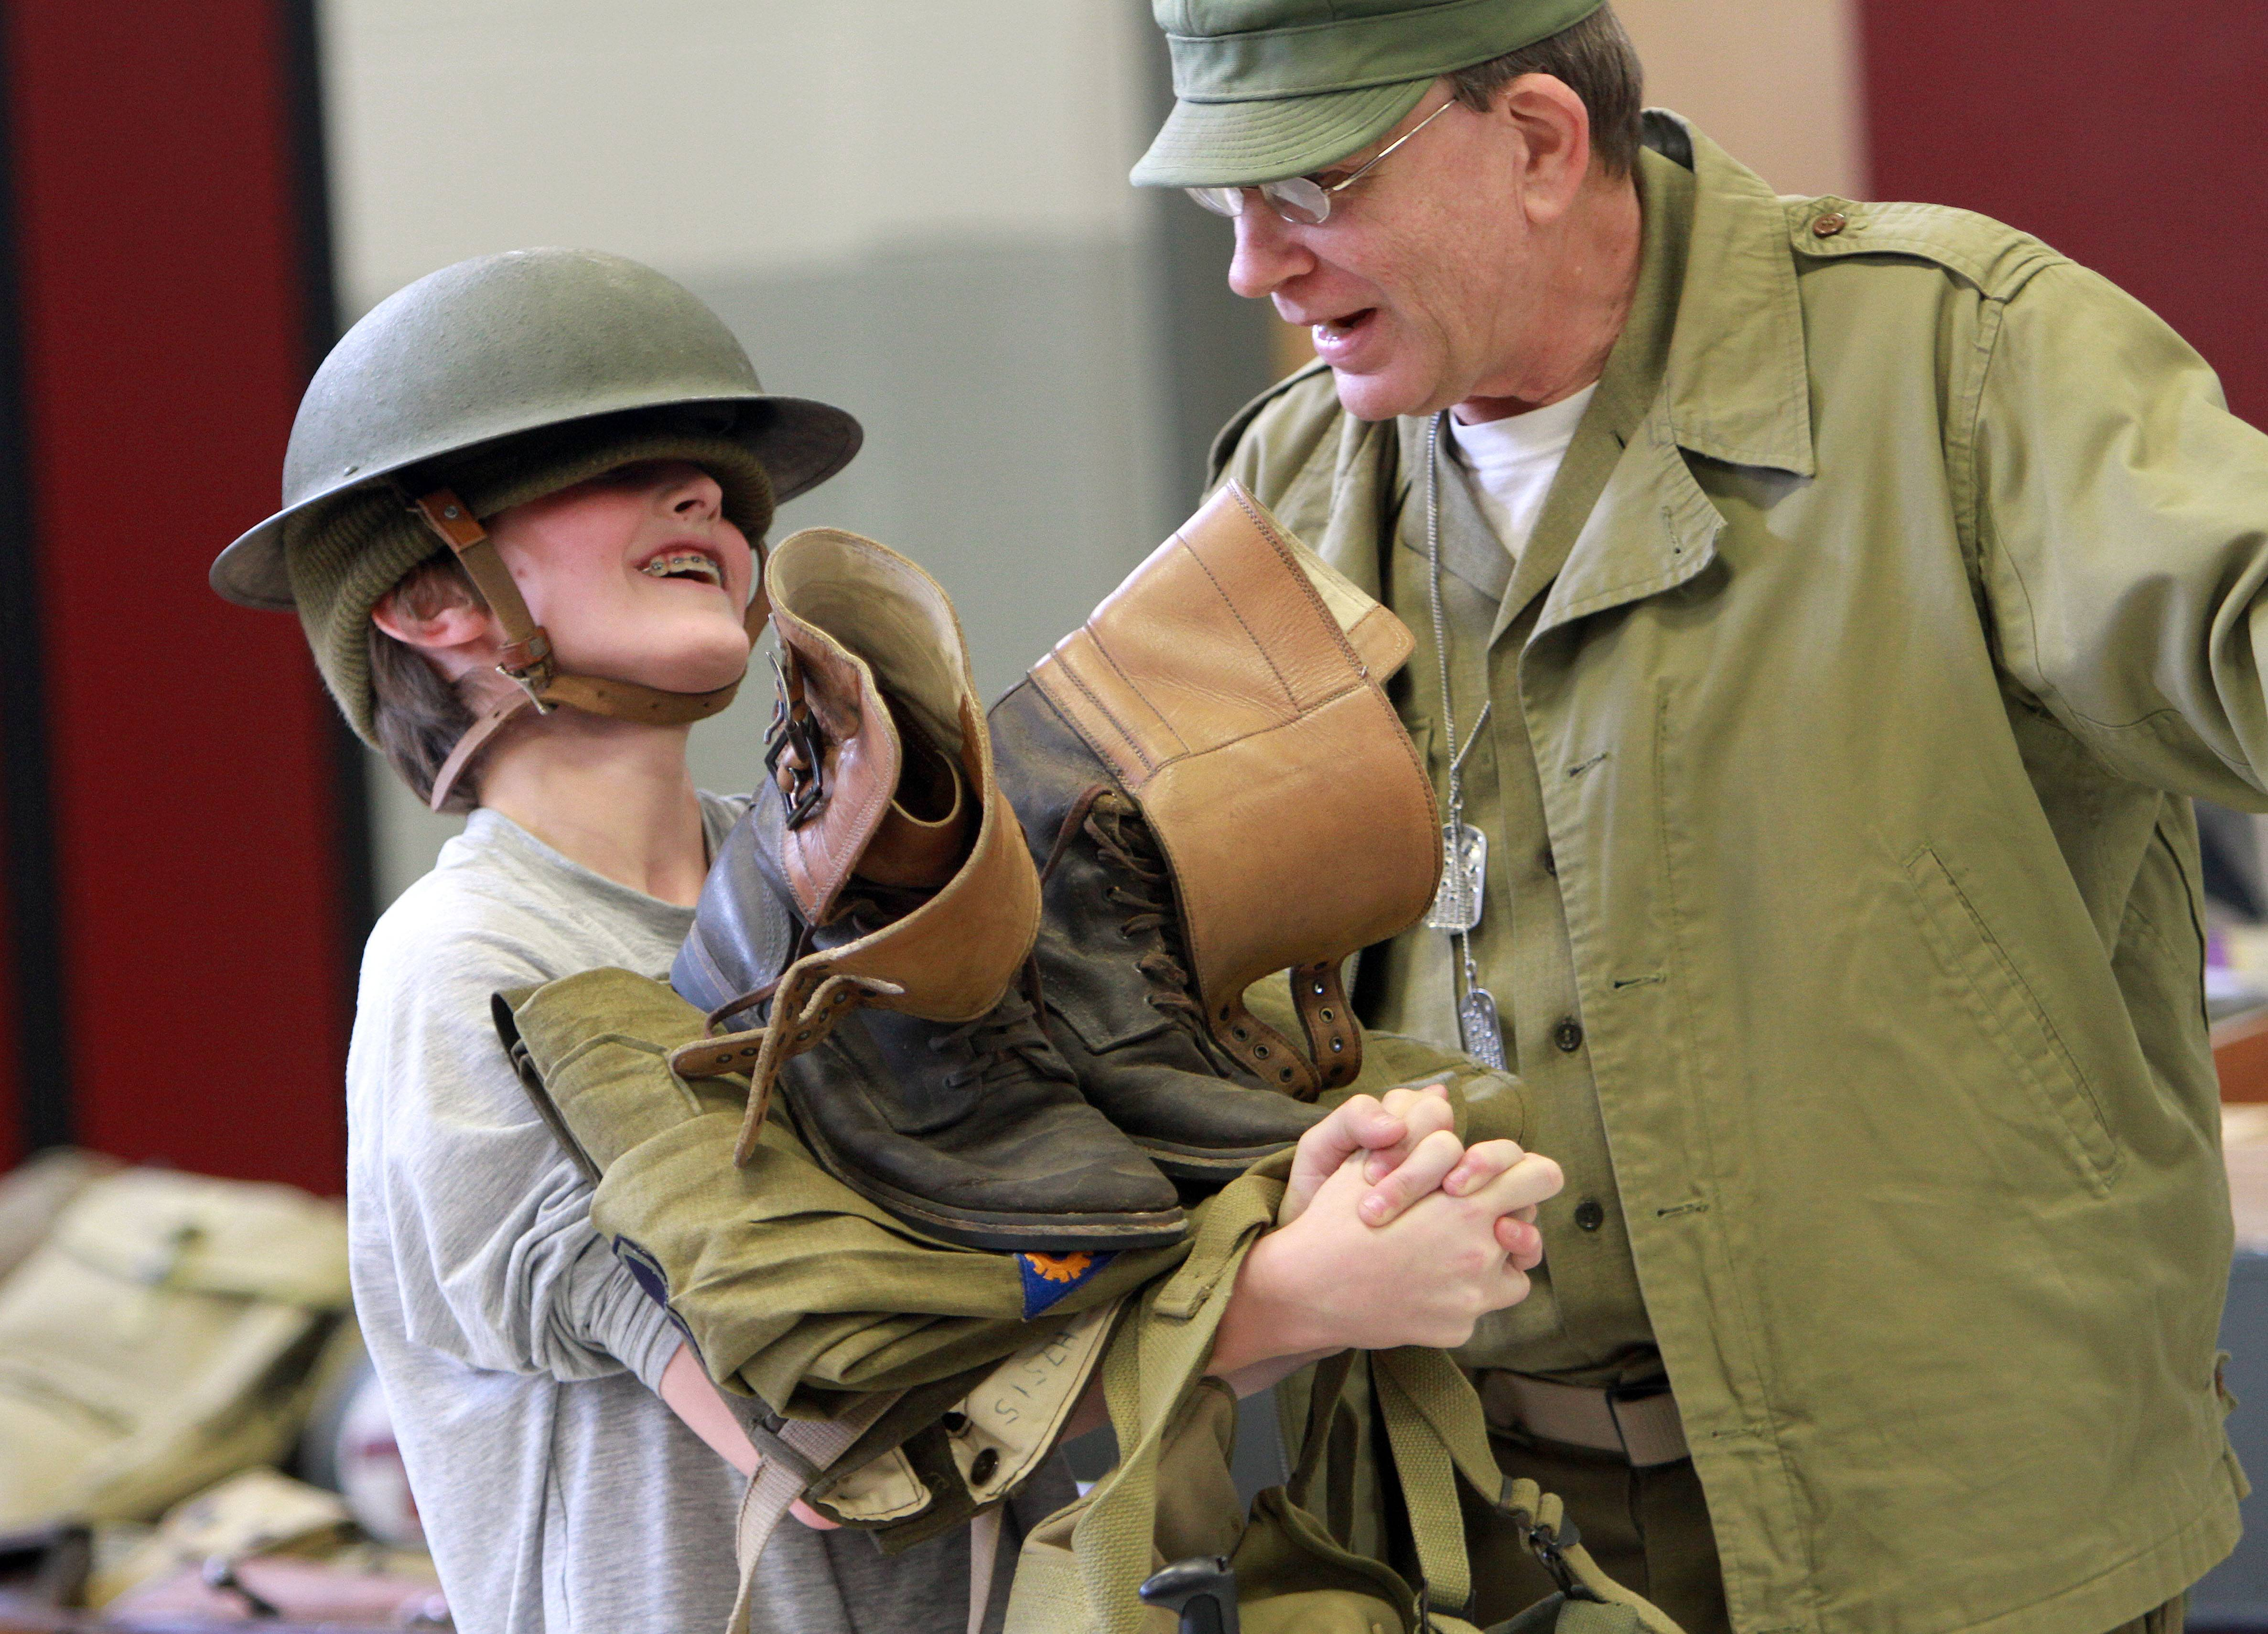 Eighth grader Hunter Lasky is loaded down with an army uniform by WWII reenactor Phil Lauricella, of Elburn, Thursday at Fremont Middle School in Mundelein.